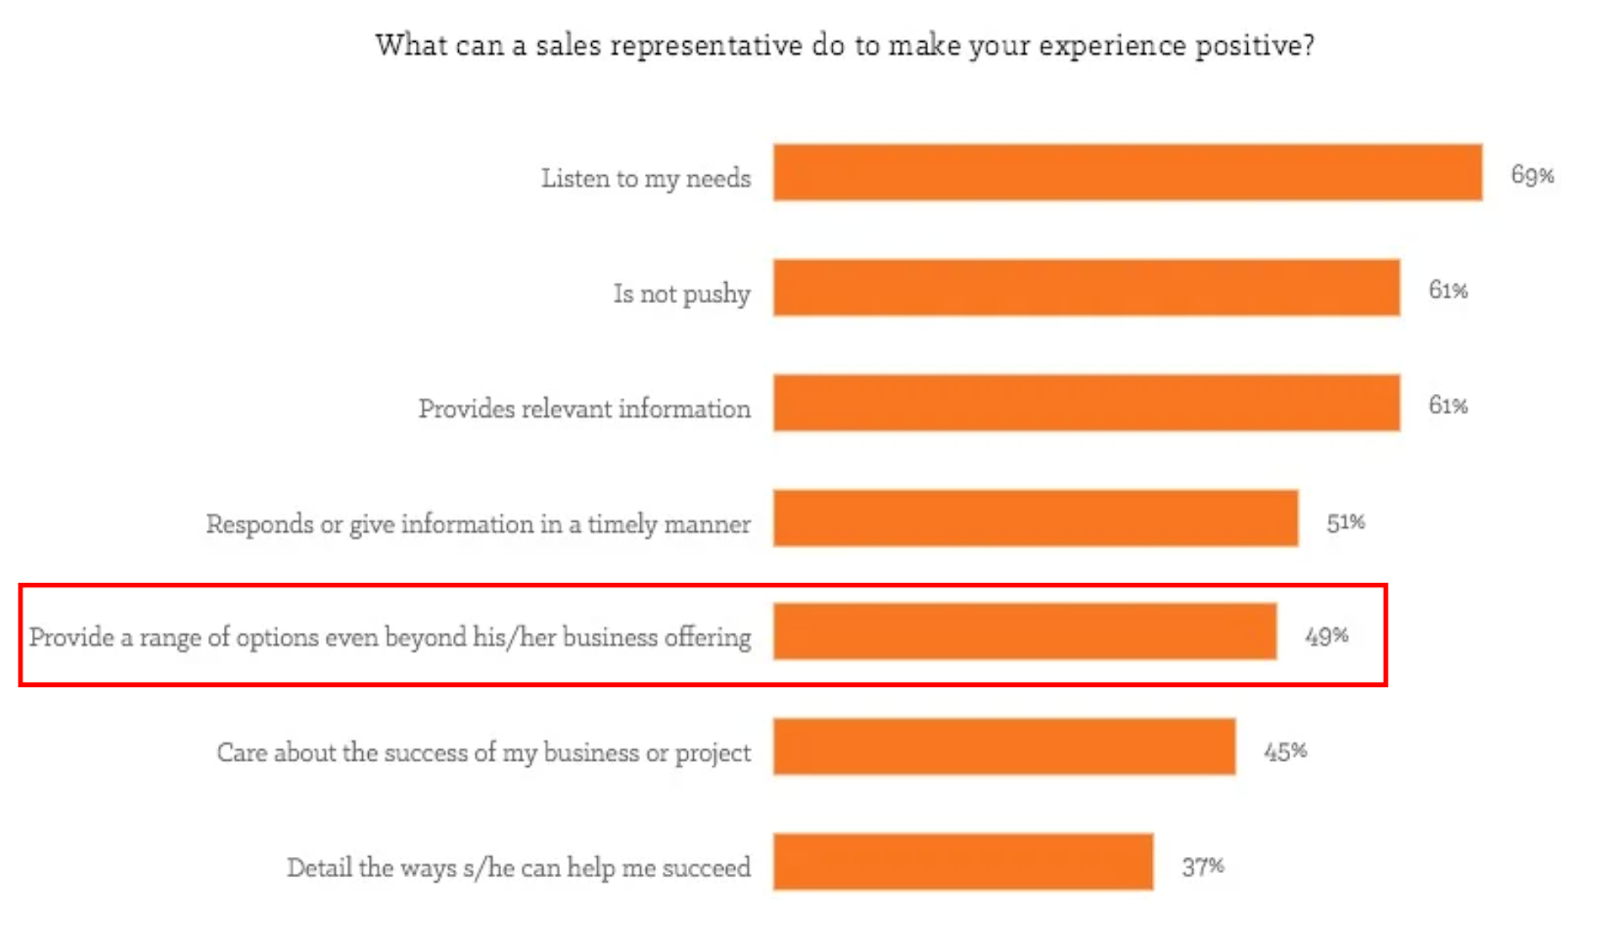 sales tips - provide options